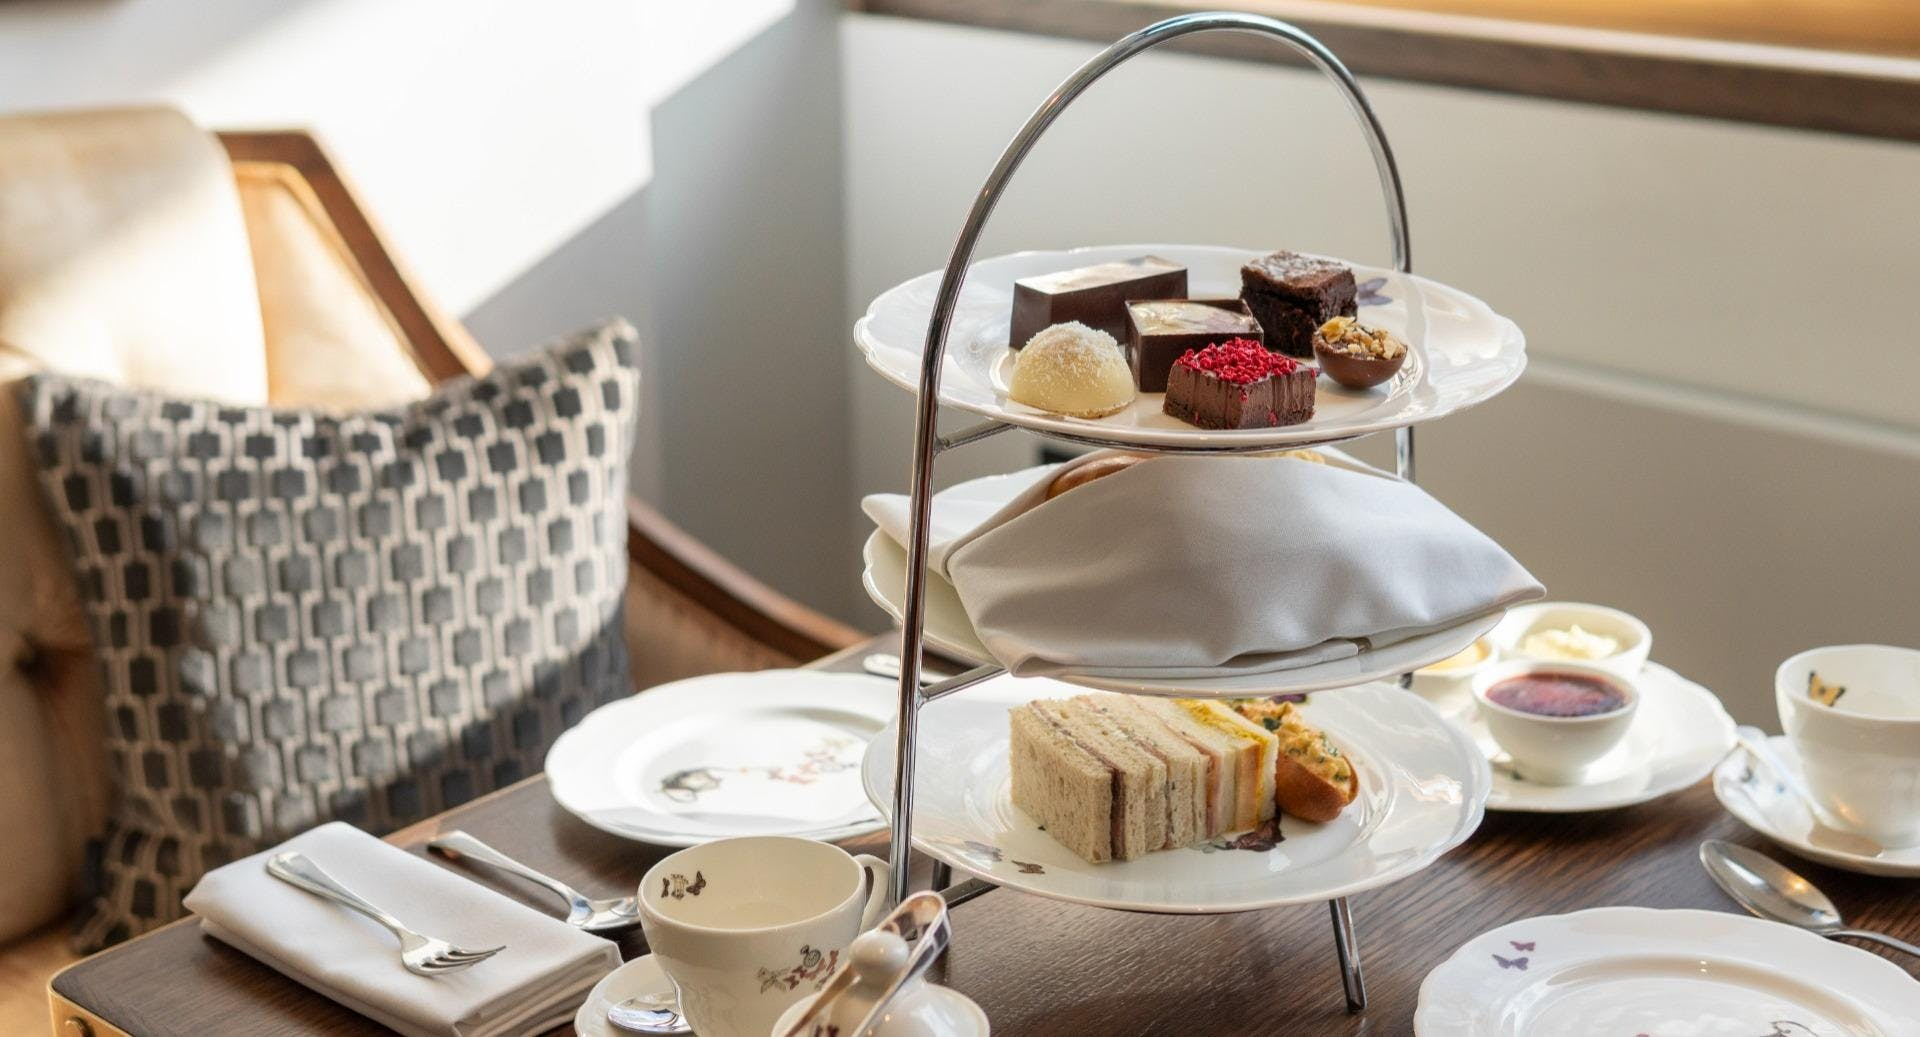 Afternoon Tea at 116 at the Athenaeum